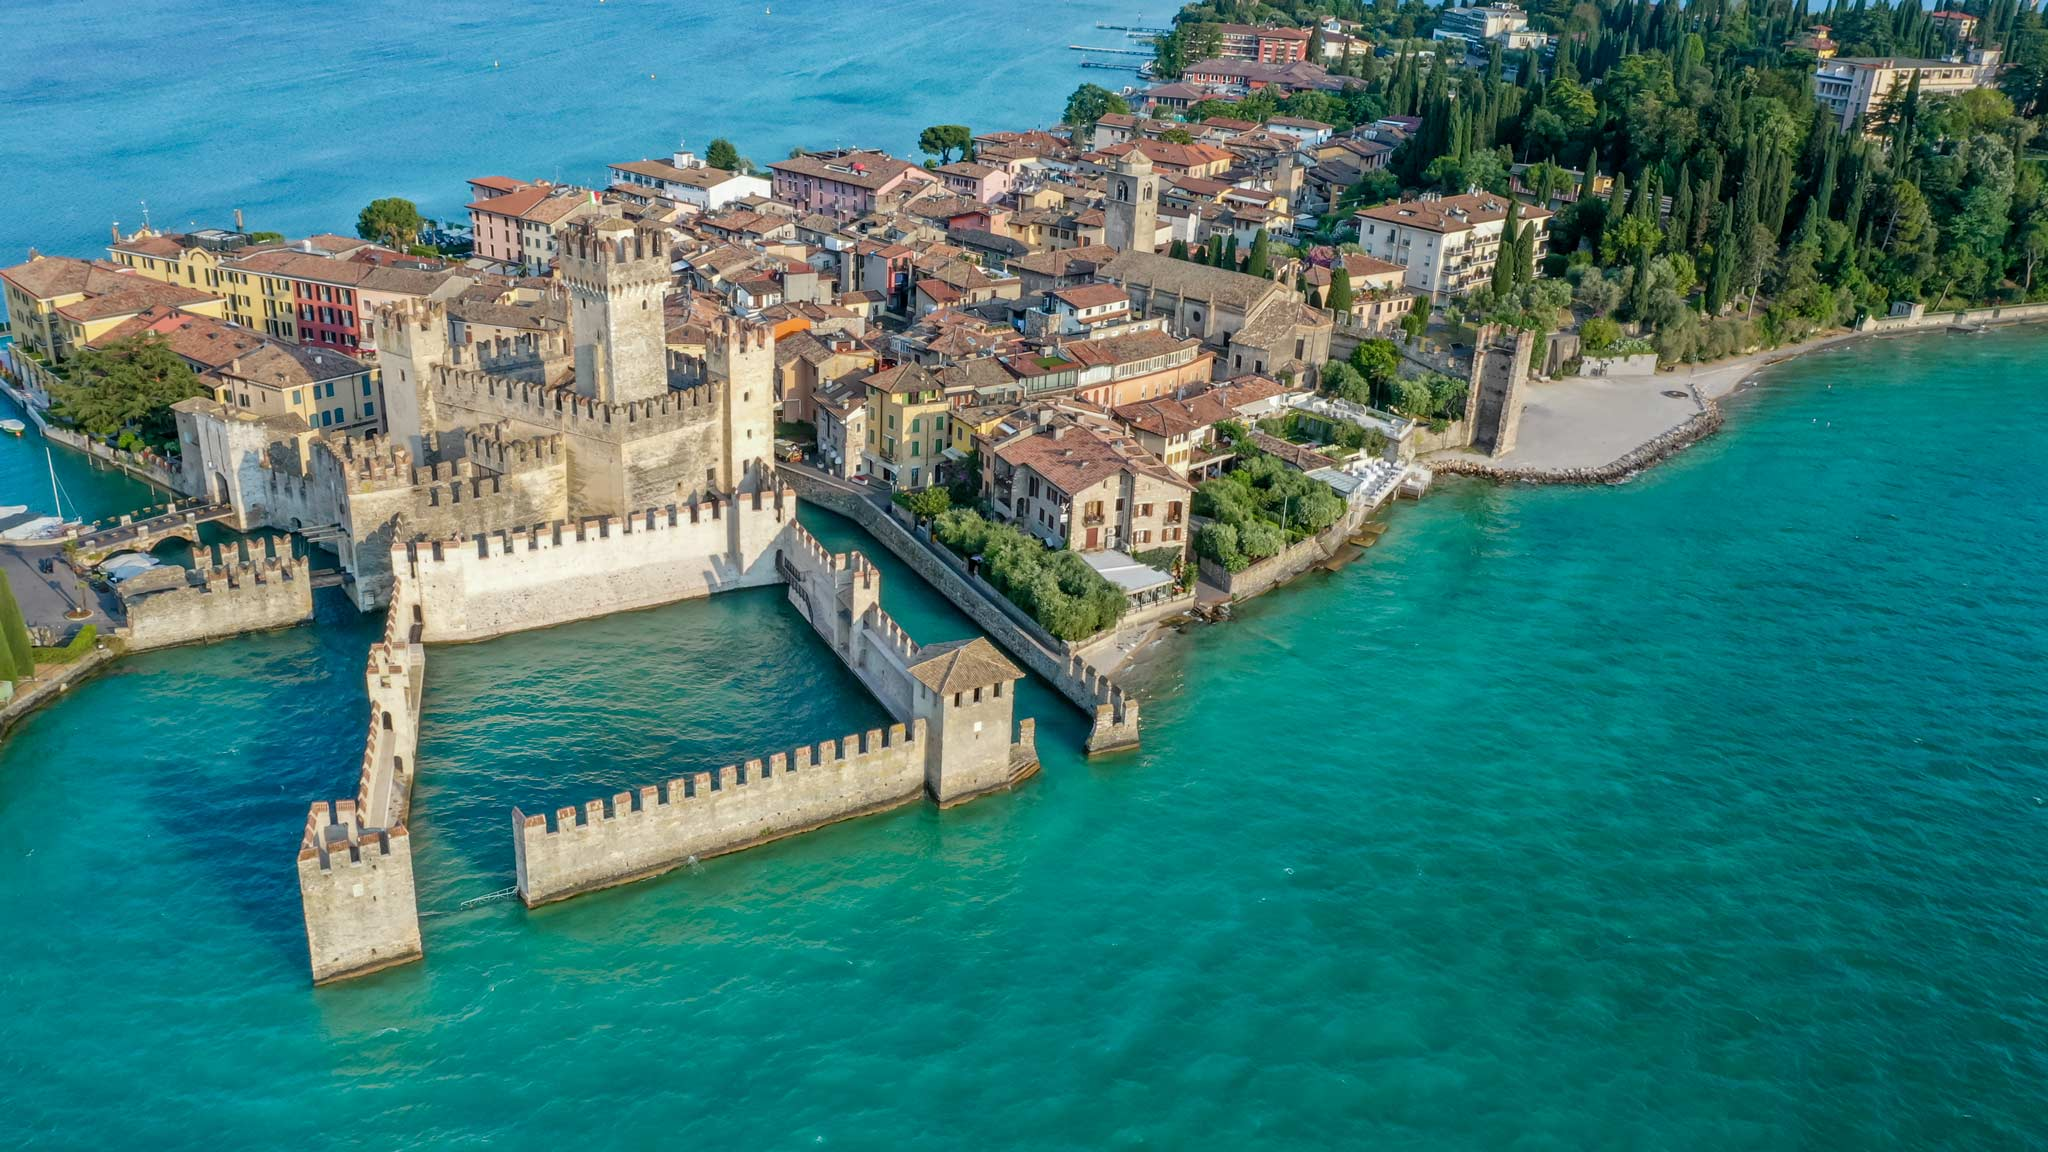 The castle of Sirmione as seen from above with the island behind it